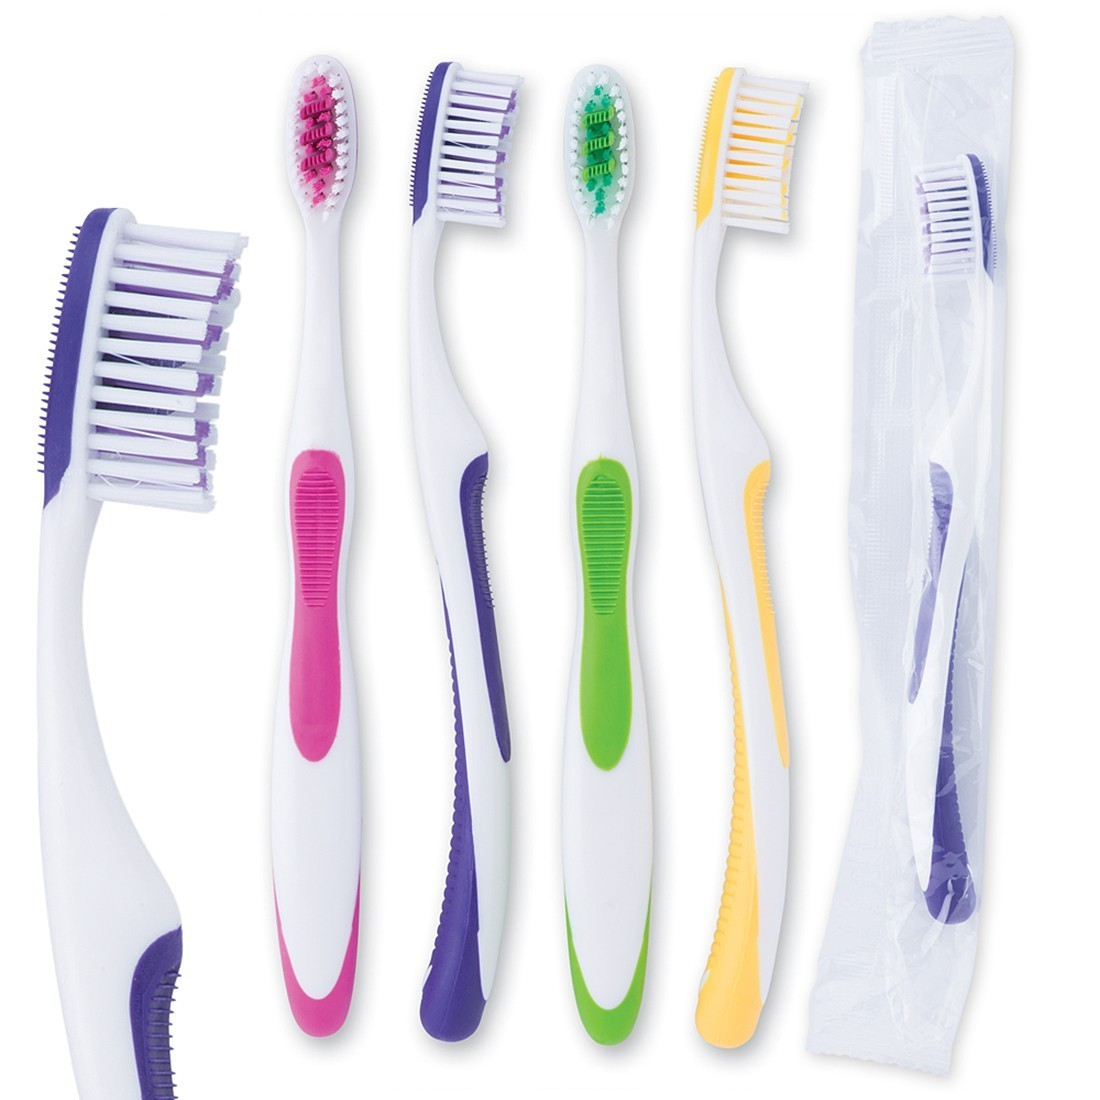 SmileCare Adult Super Grip Toothbrush - Case [image]